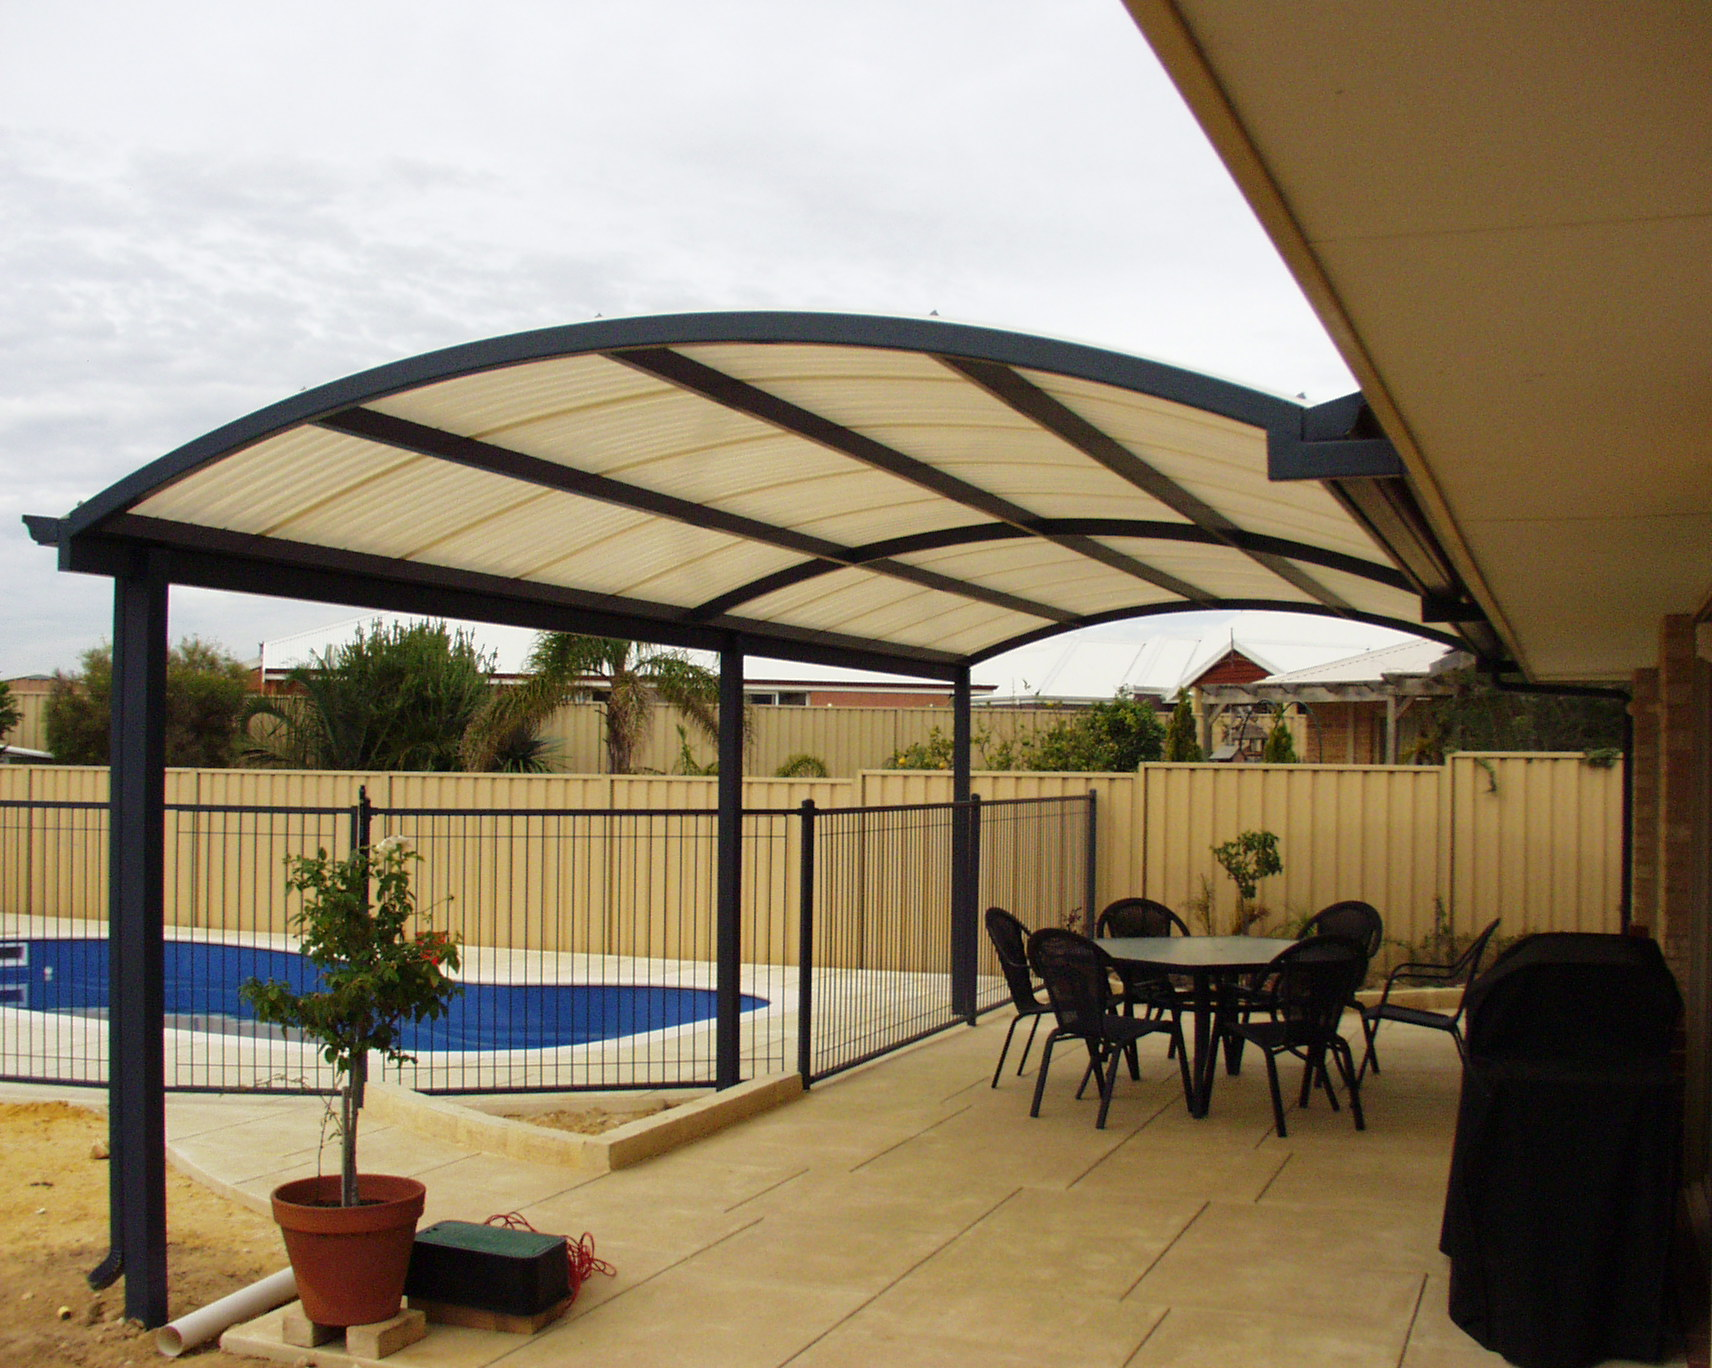 Backyard Patio Covers: From Usefulness To Style - HomesFeed on Backyard Patio Cover  id=33568